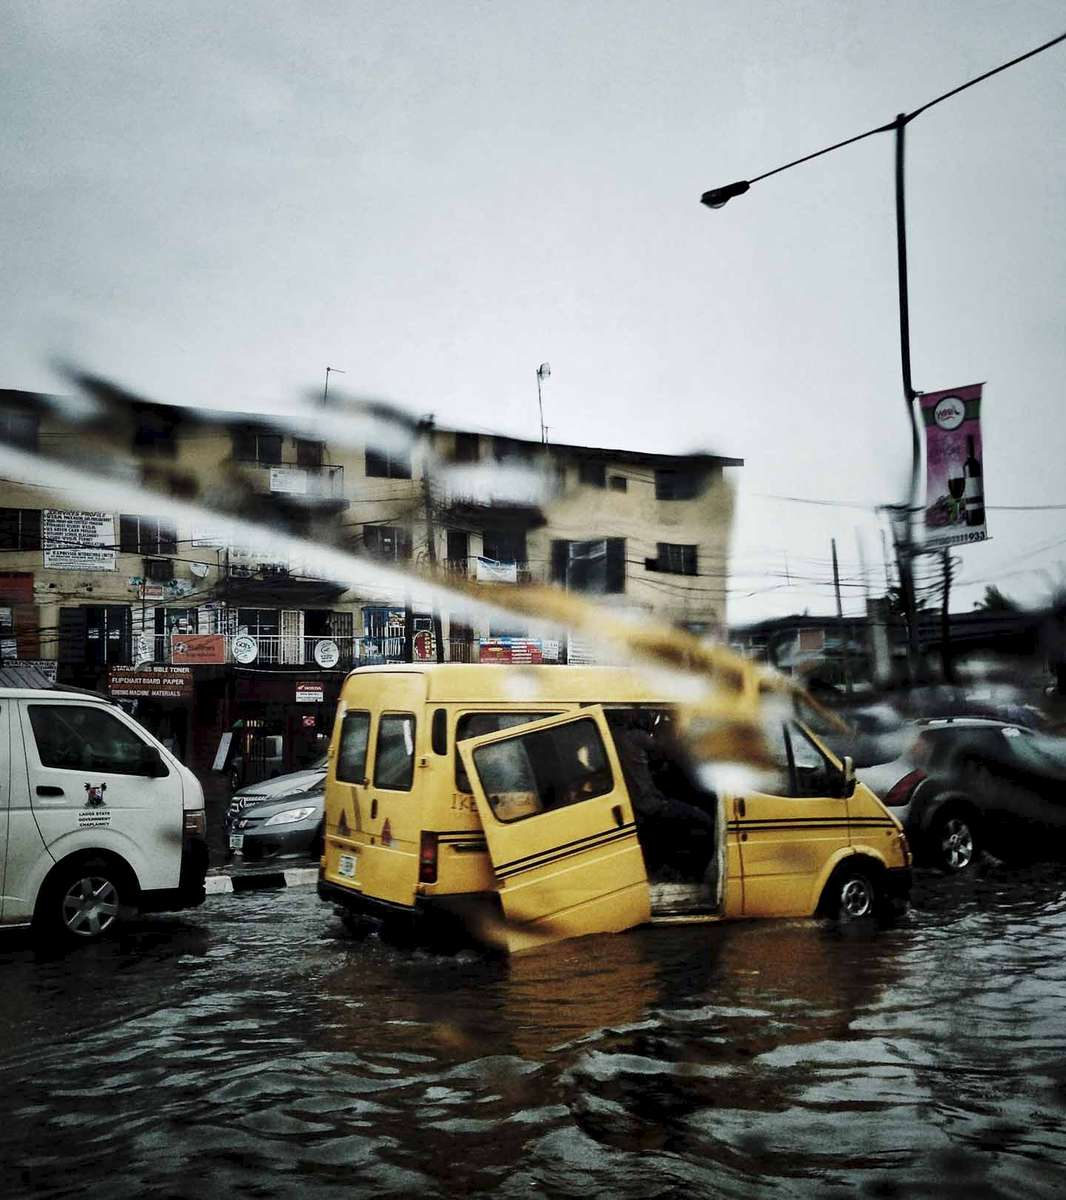 When it rains, it floods. Traffic in Lagos, Nigeria. October 2014.